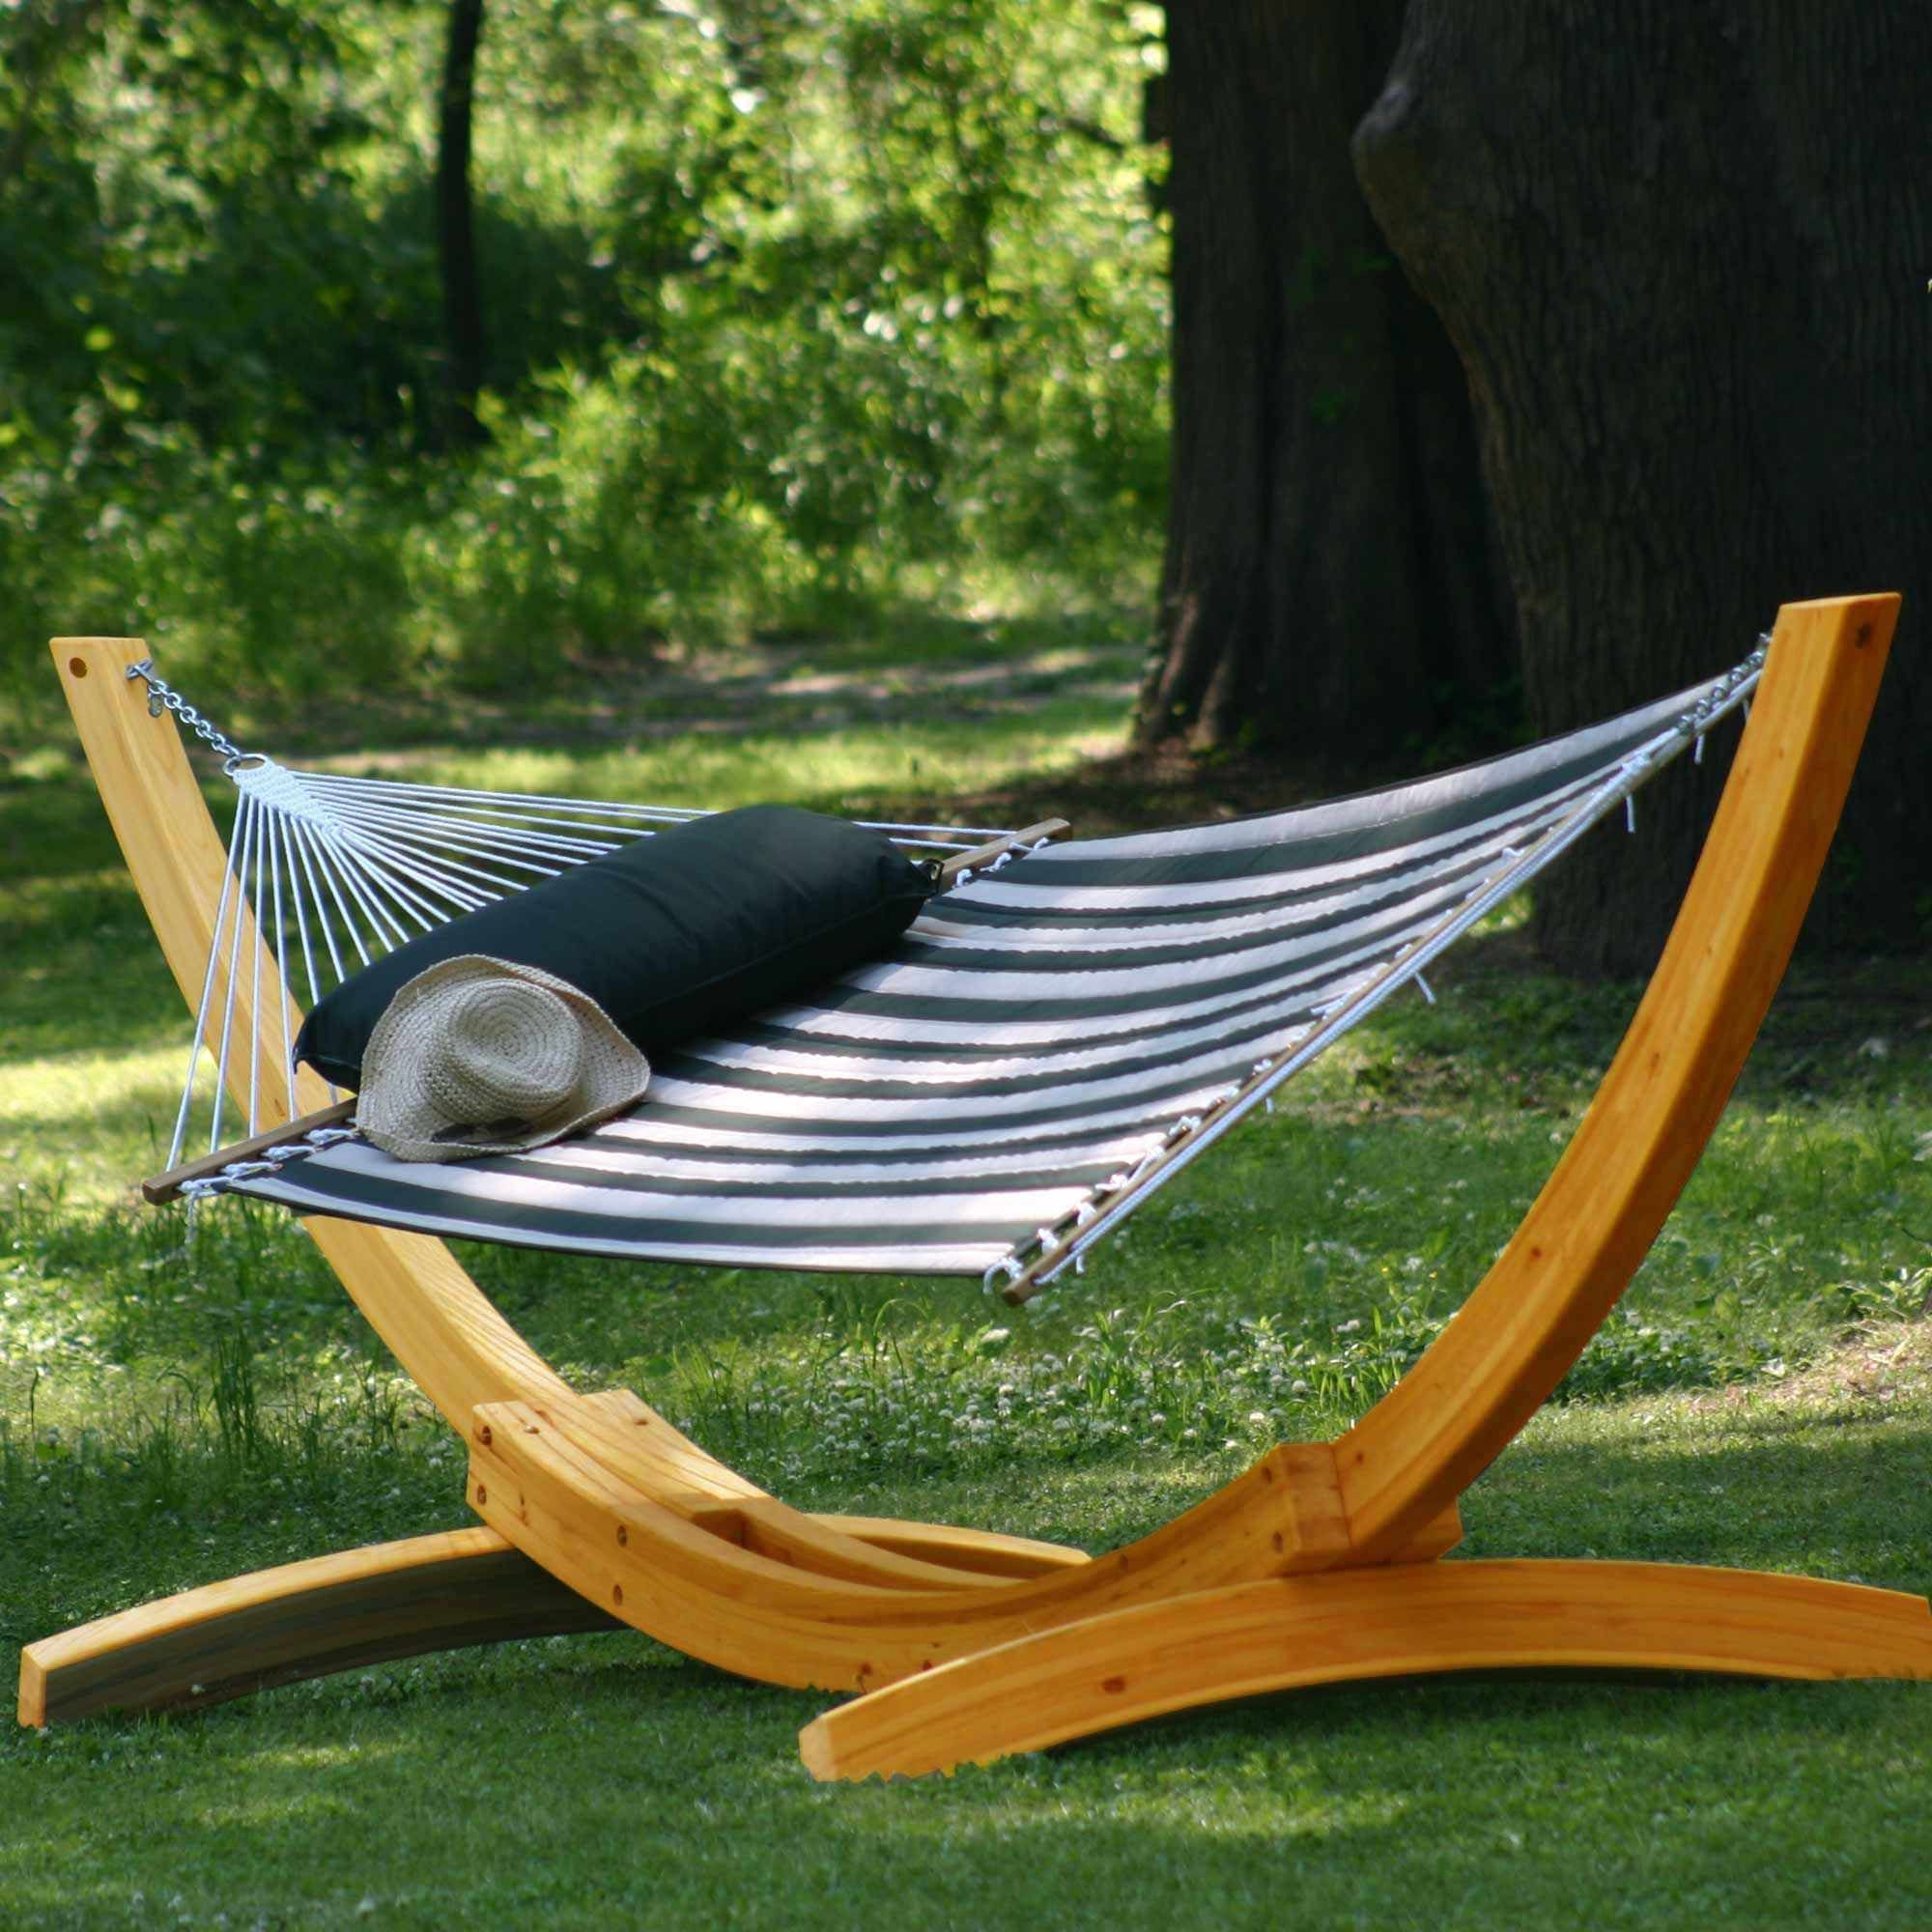 weston outdoor replacement hammock  fabric only  weston outdoor replacement hammock  fabric only    products      rh   pinterest